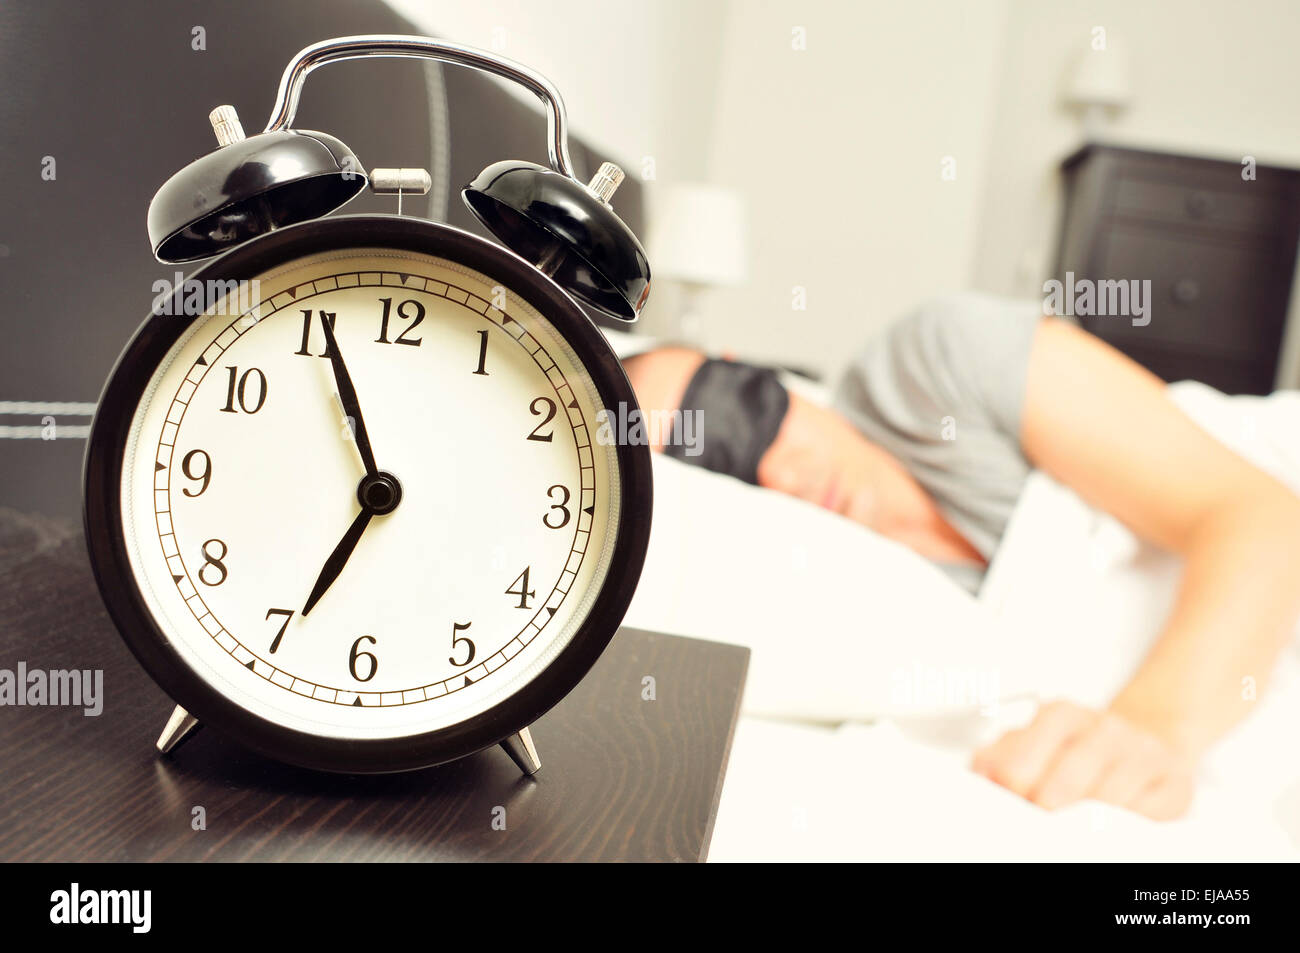 closeup of an alarm clock at 6.55 in the morning on the night